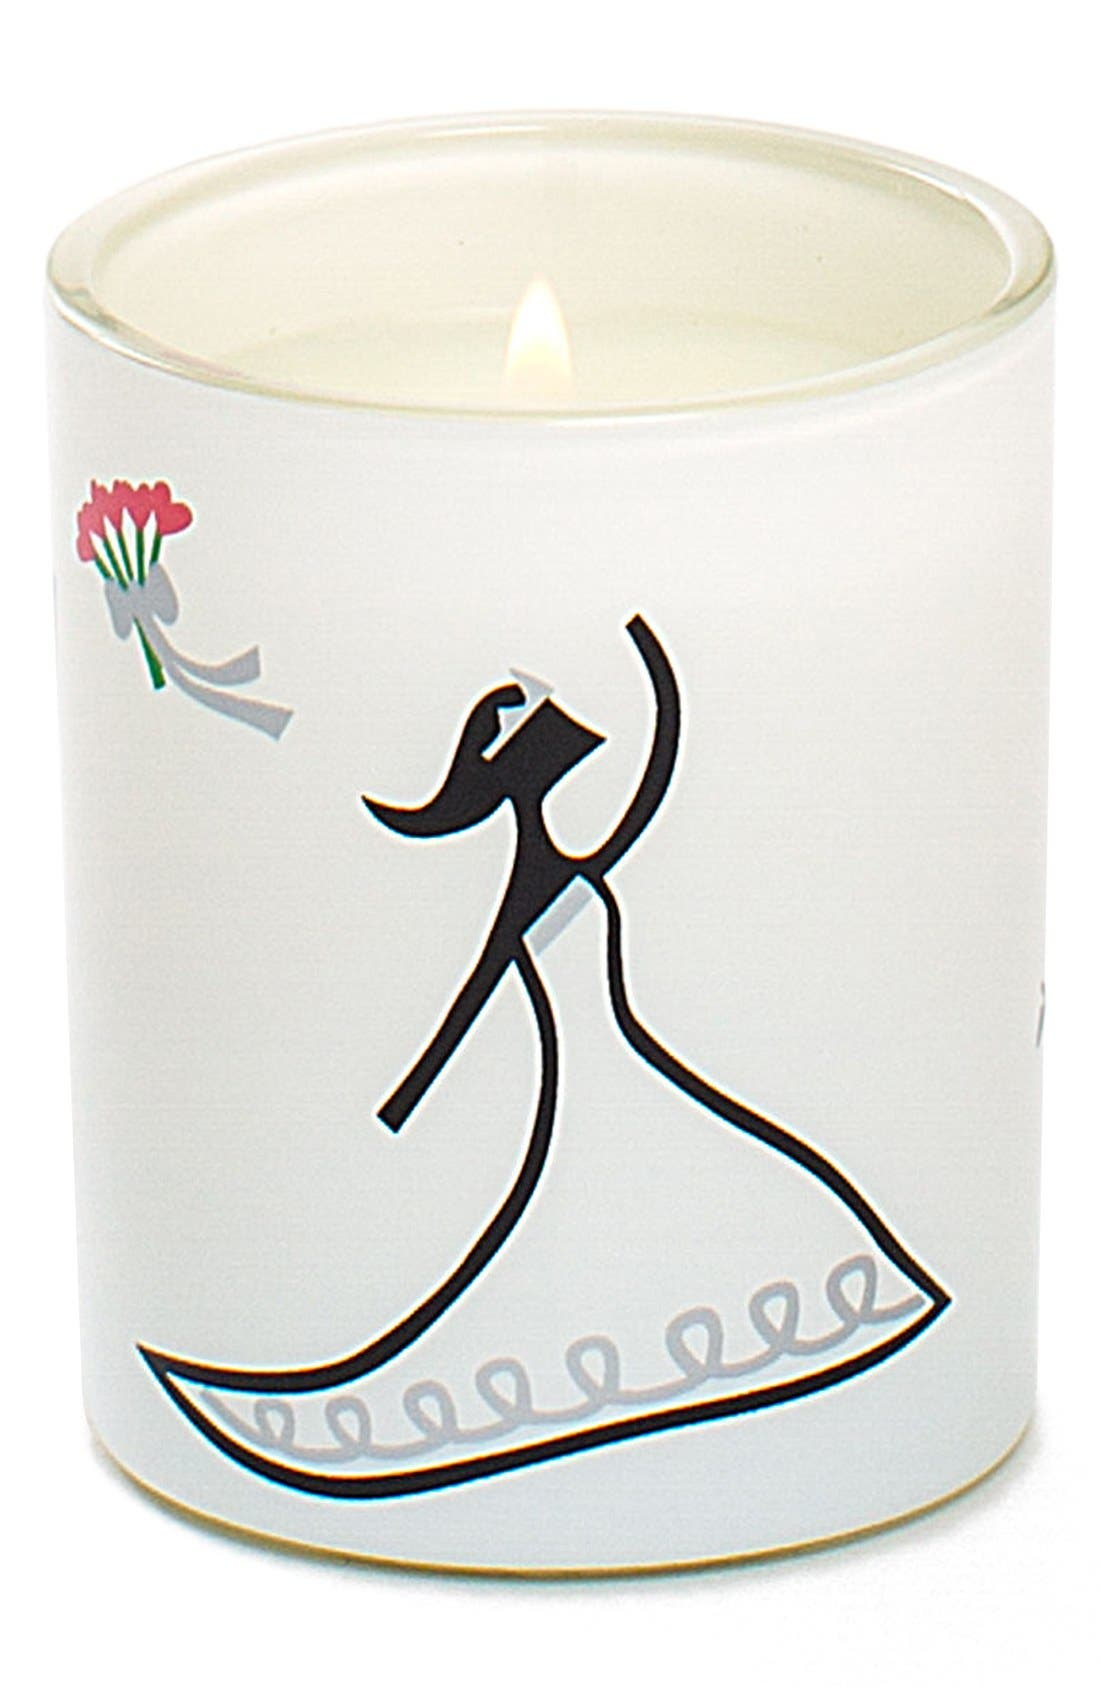 Alternate Image 1 Selected - R. Nichols 'Toss' Mini Scented Candle